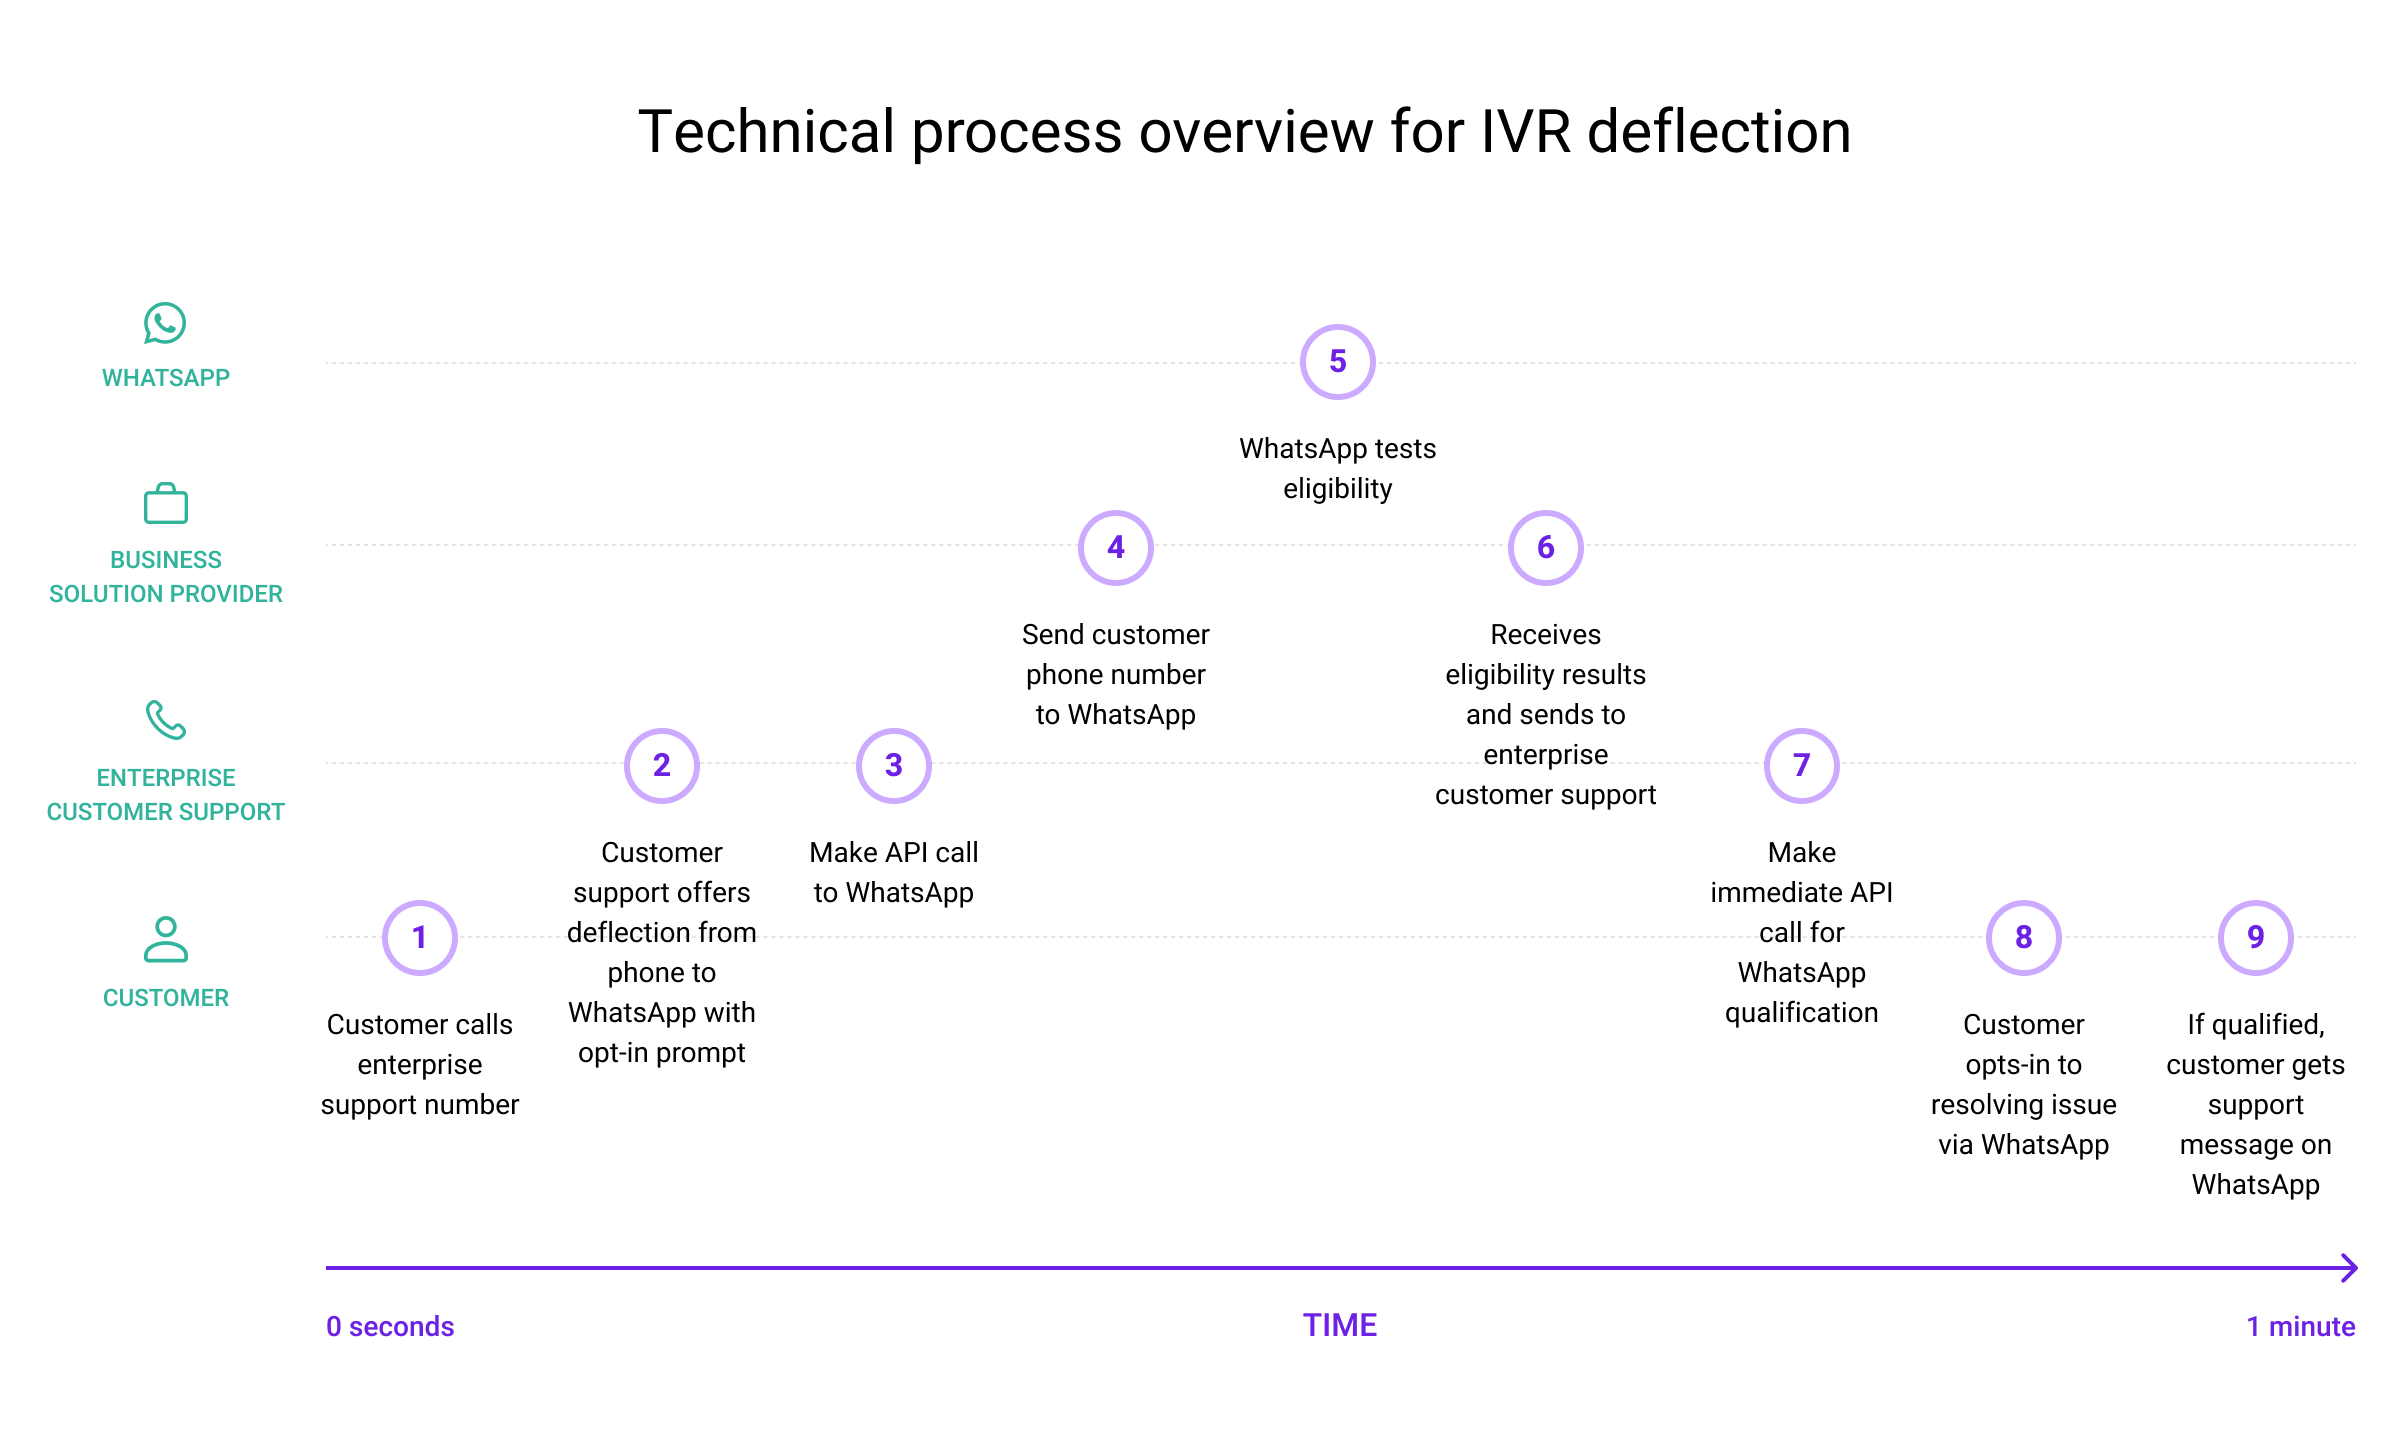 Technical process overview for IVR deflection